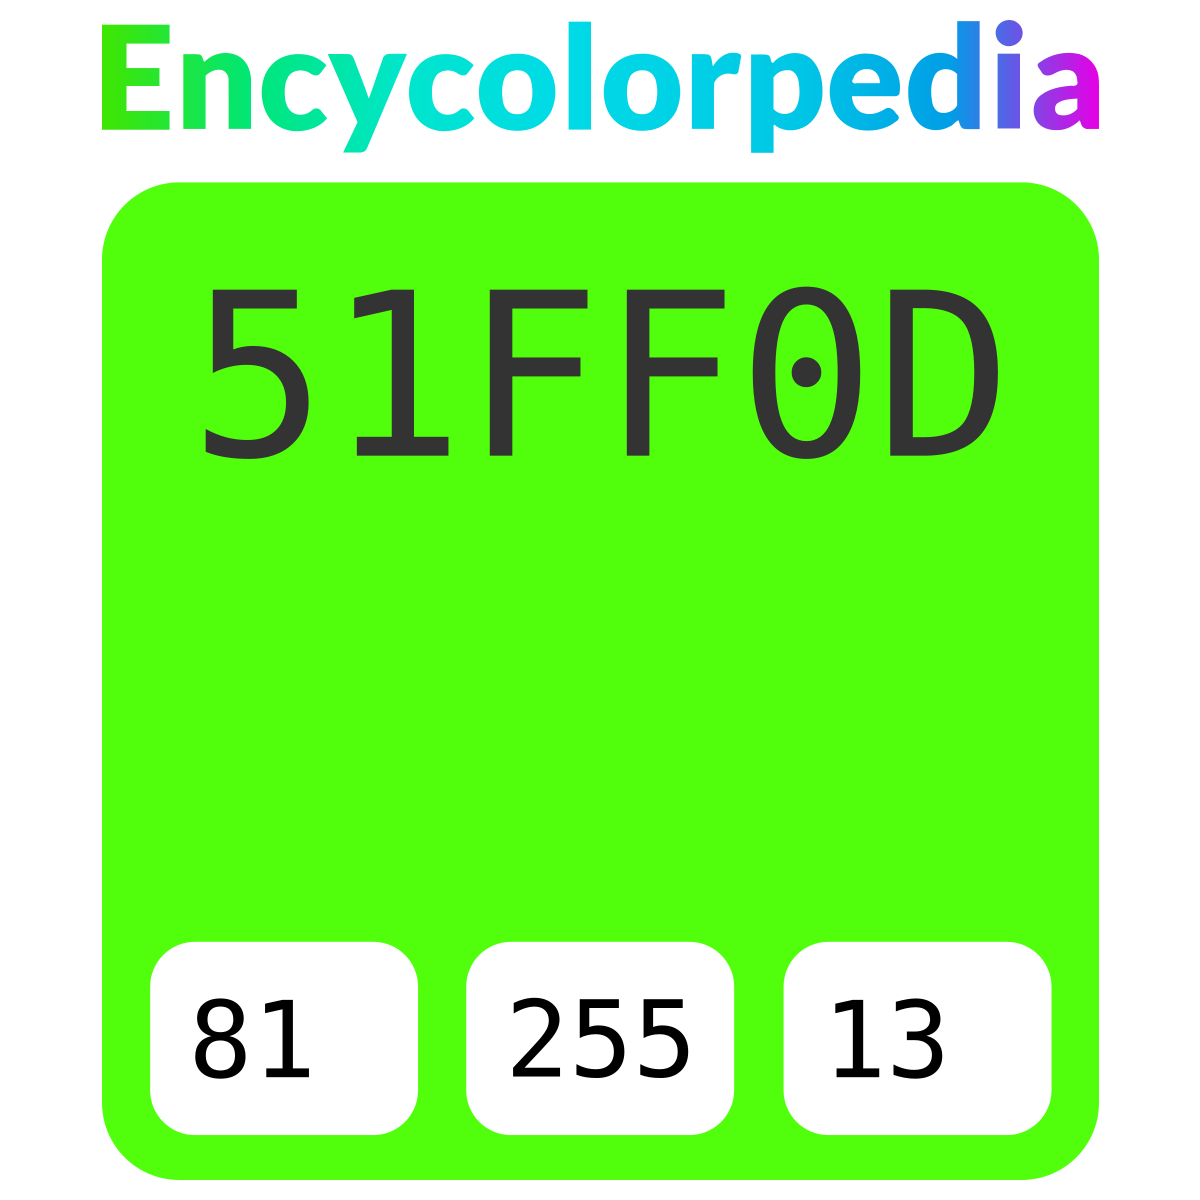 Crayola Glowing Green / #51ff0d Hex Color Code Schemes & Paints